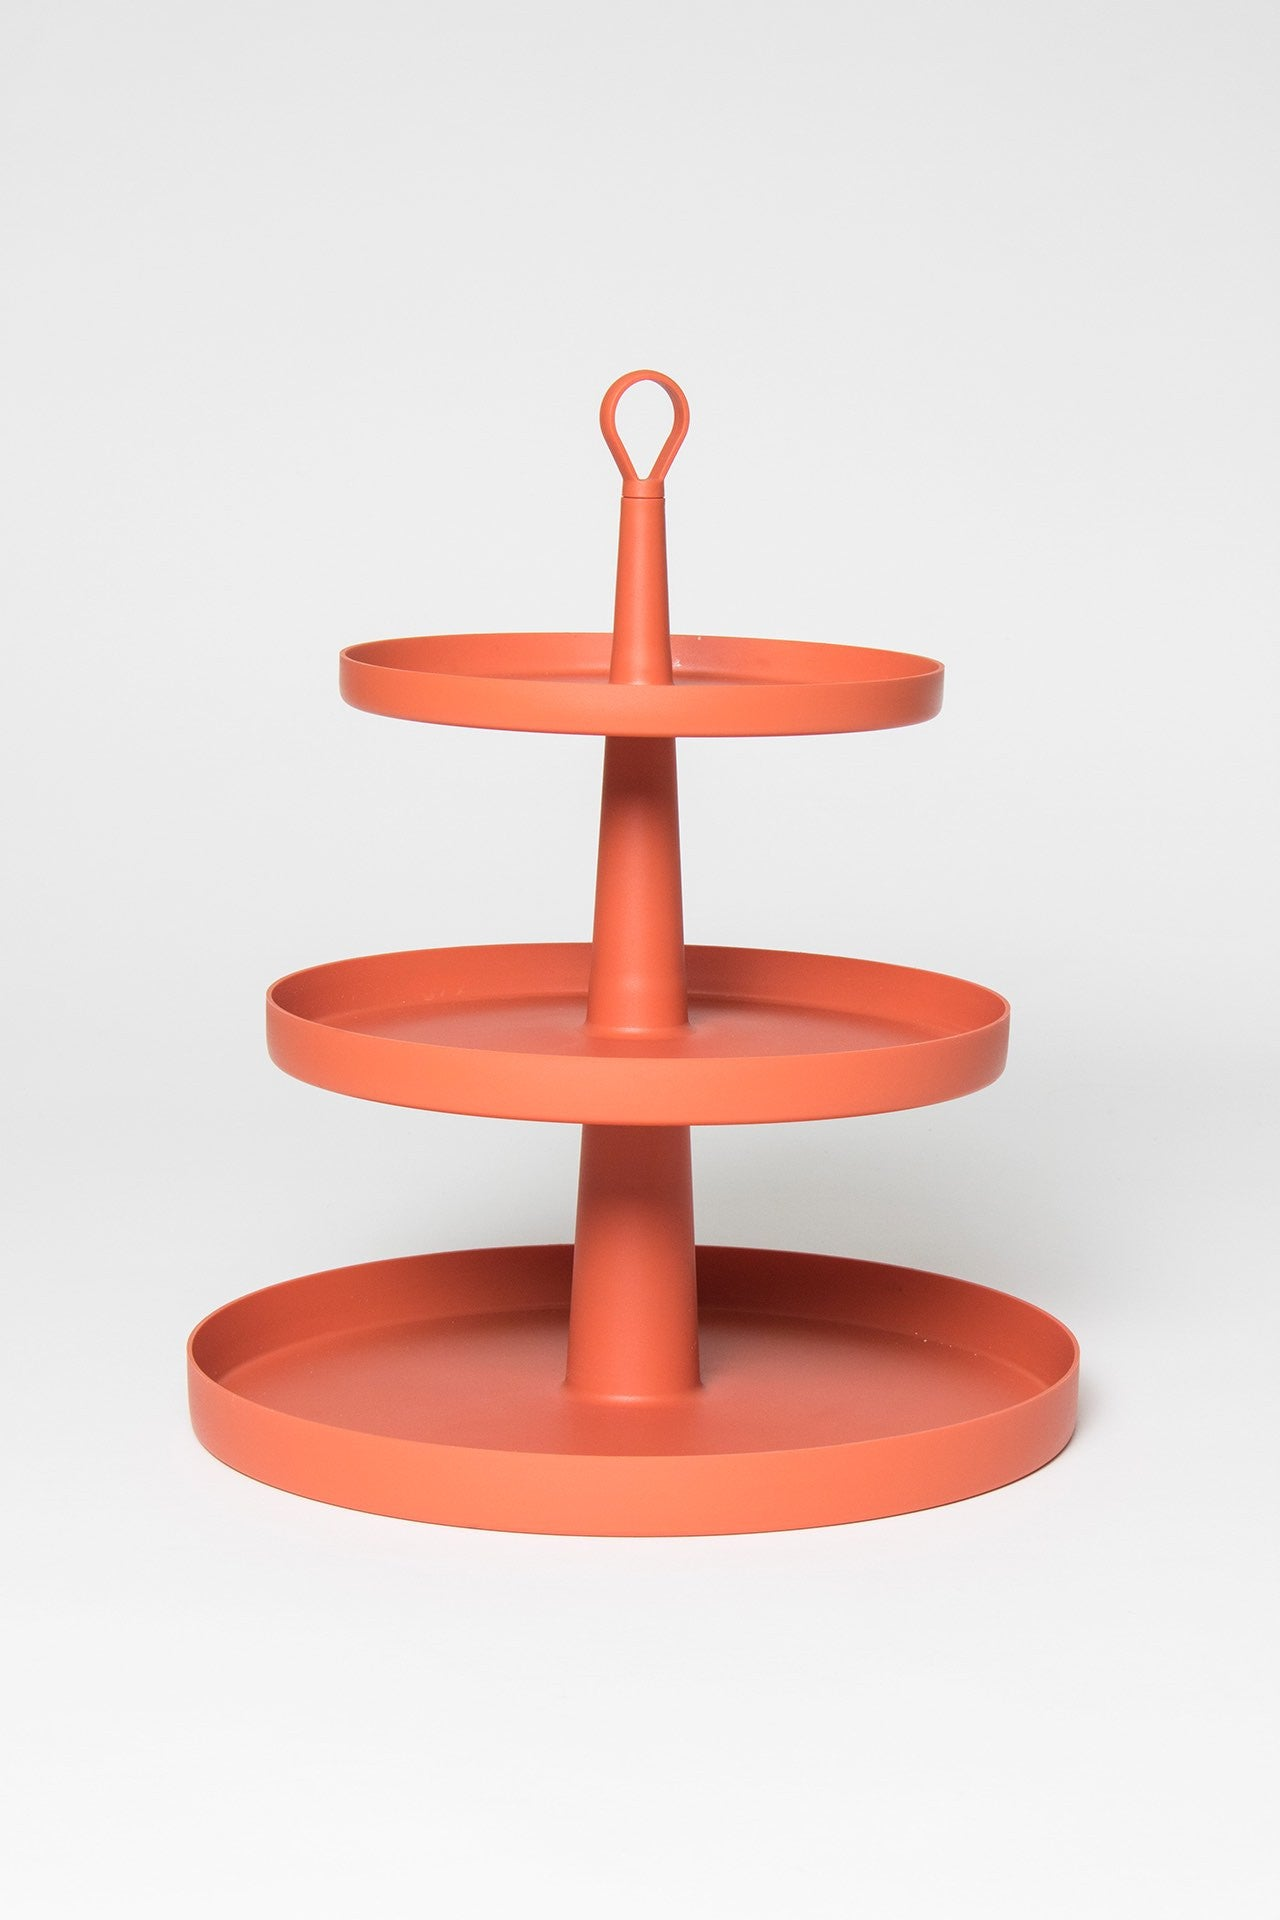 OMMO THREE LEVELS CAKE STAND - Eclectic Cool  - 2